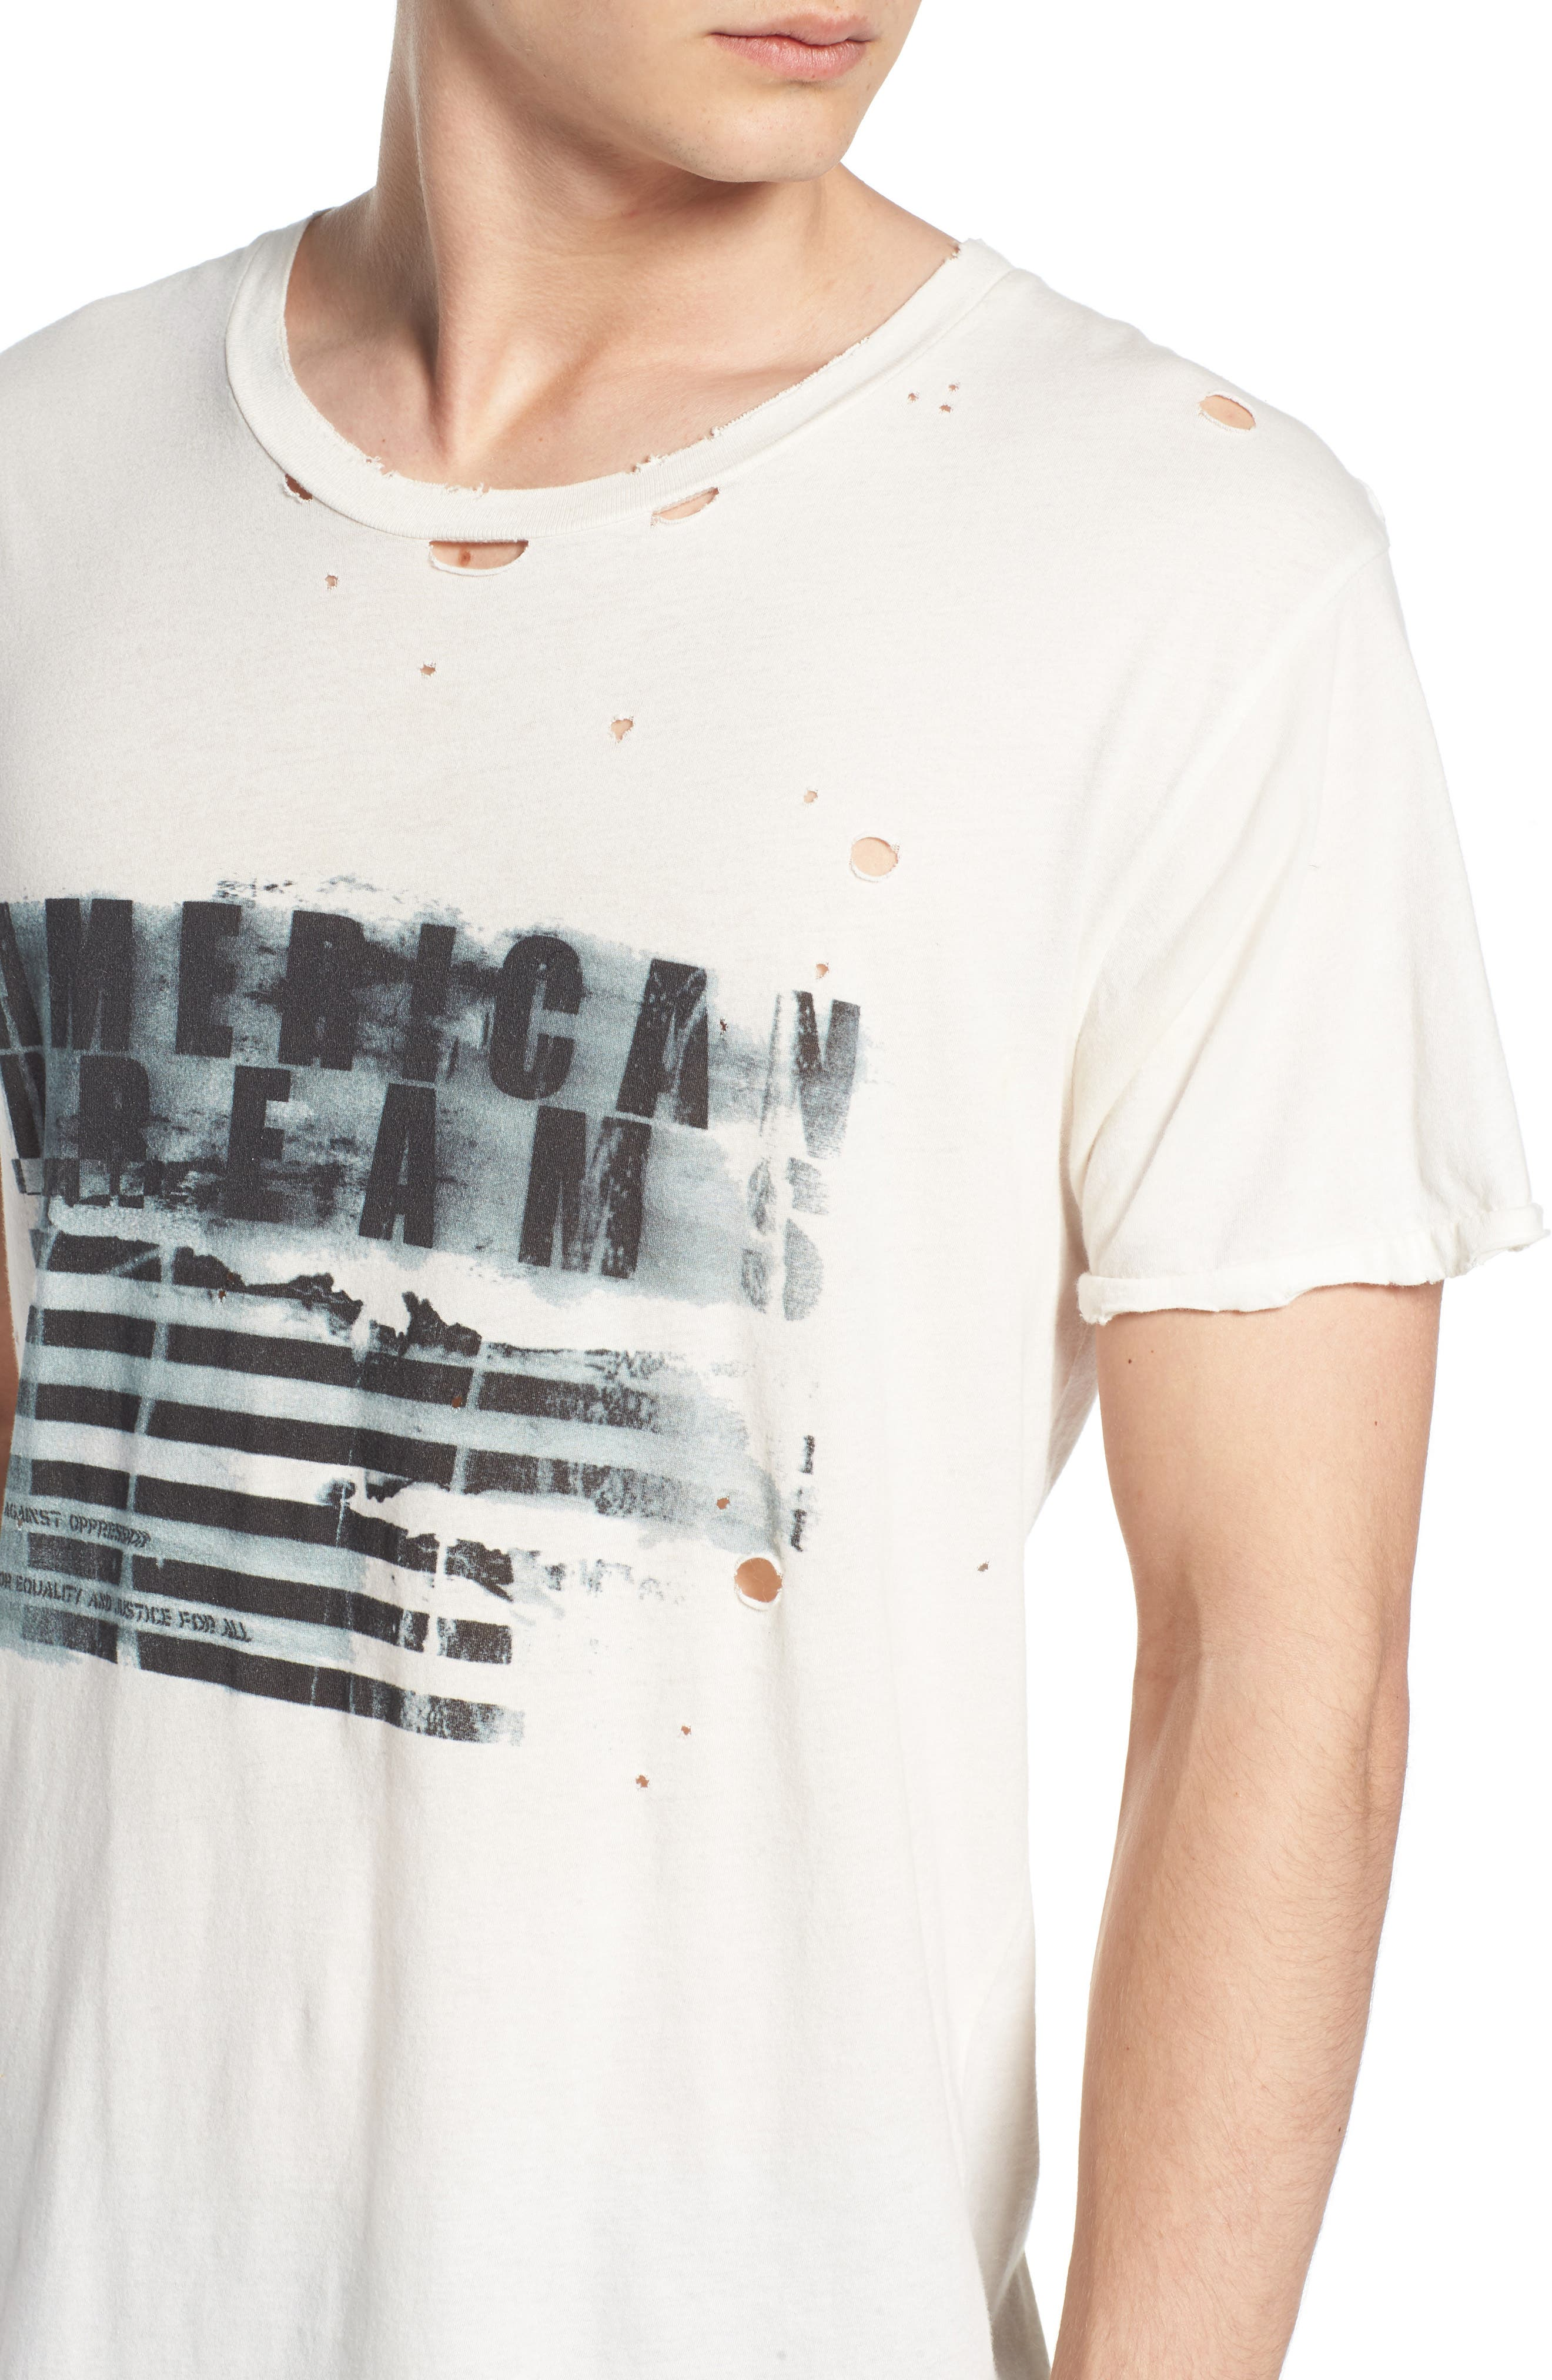 American Dreams Distressed Graphic T-Shirt,                             Alternate thumbnail 4, color,                             100